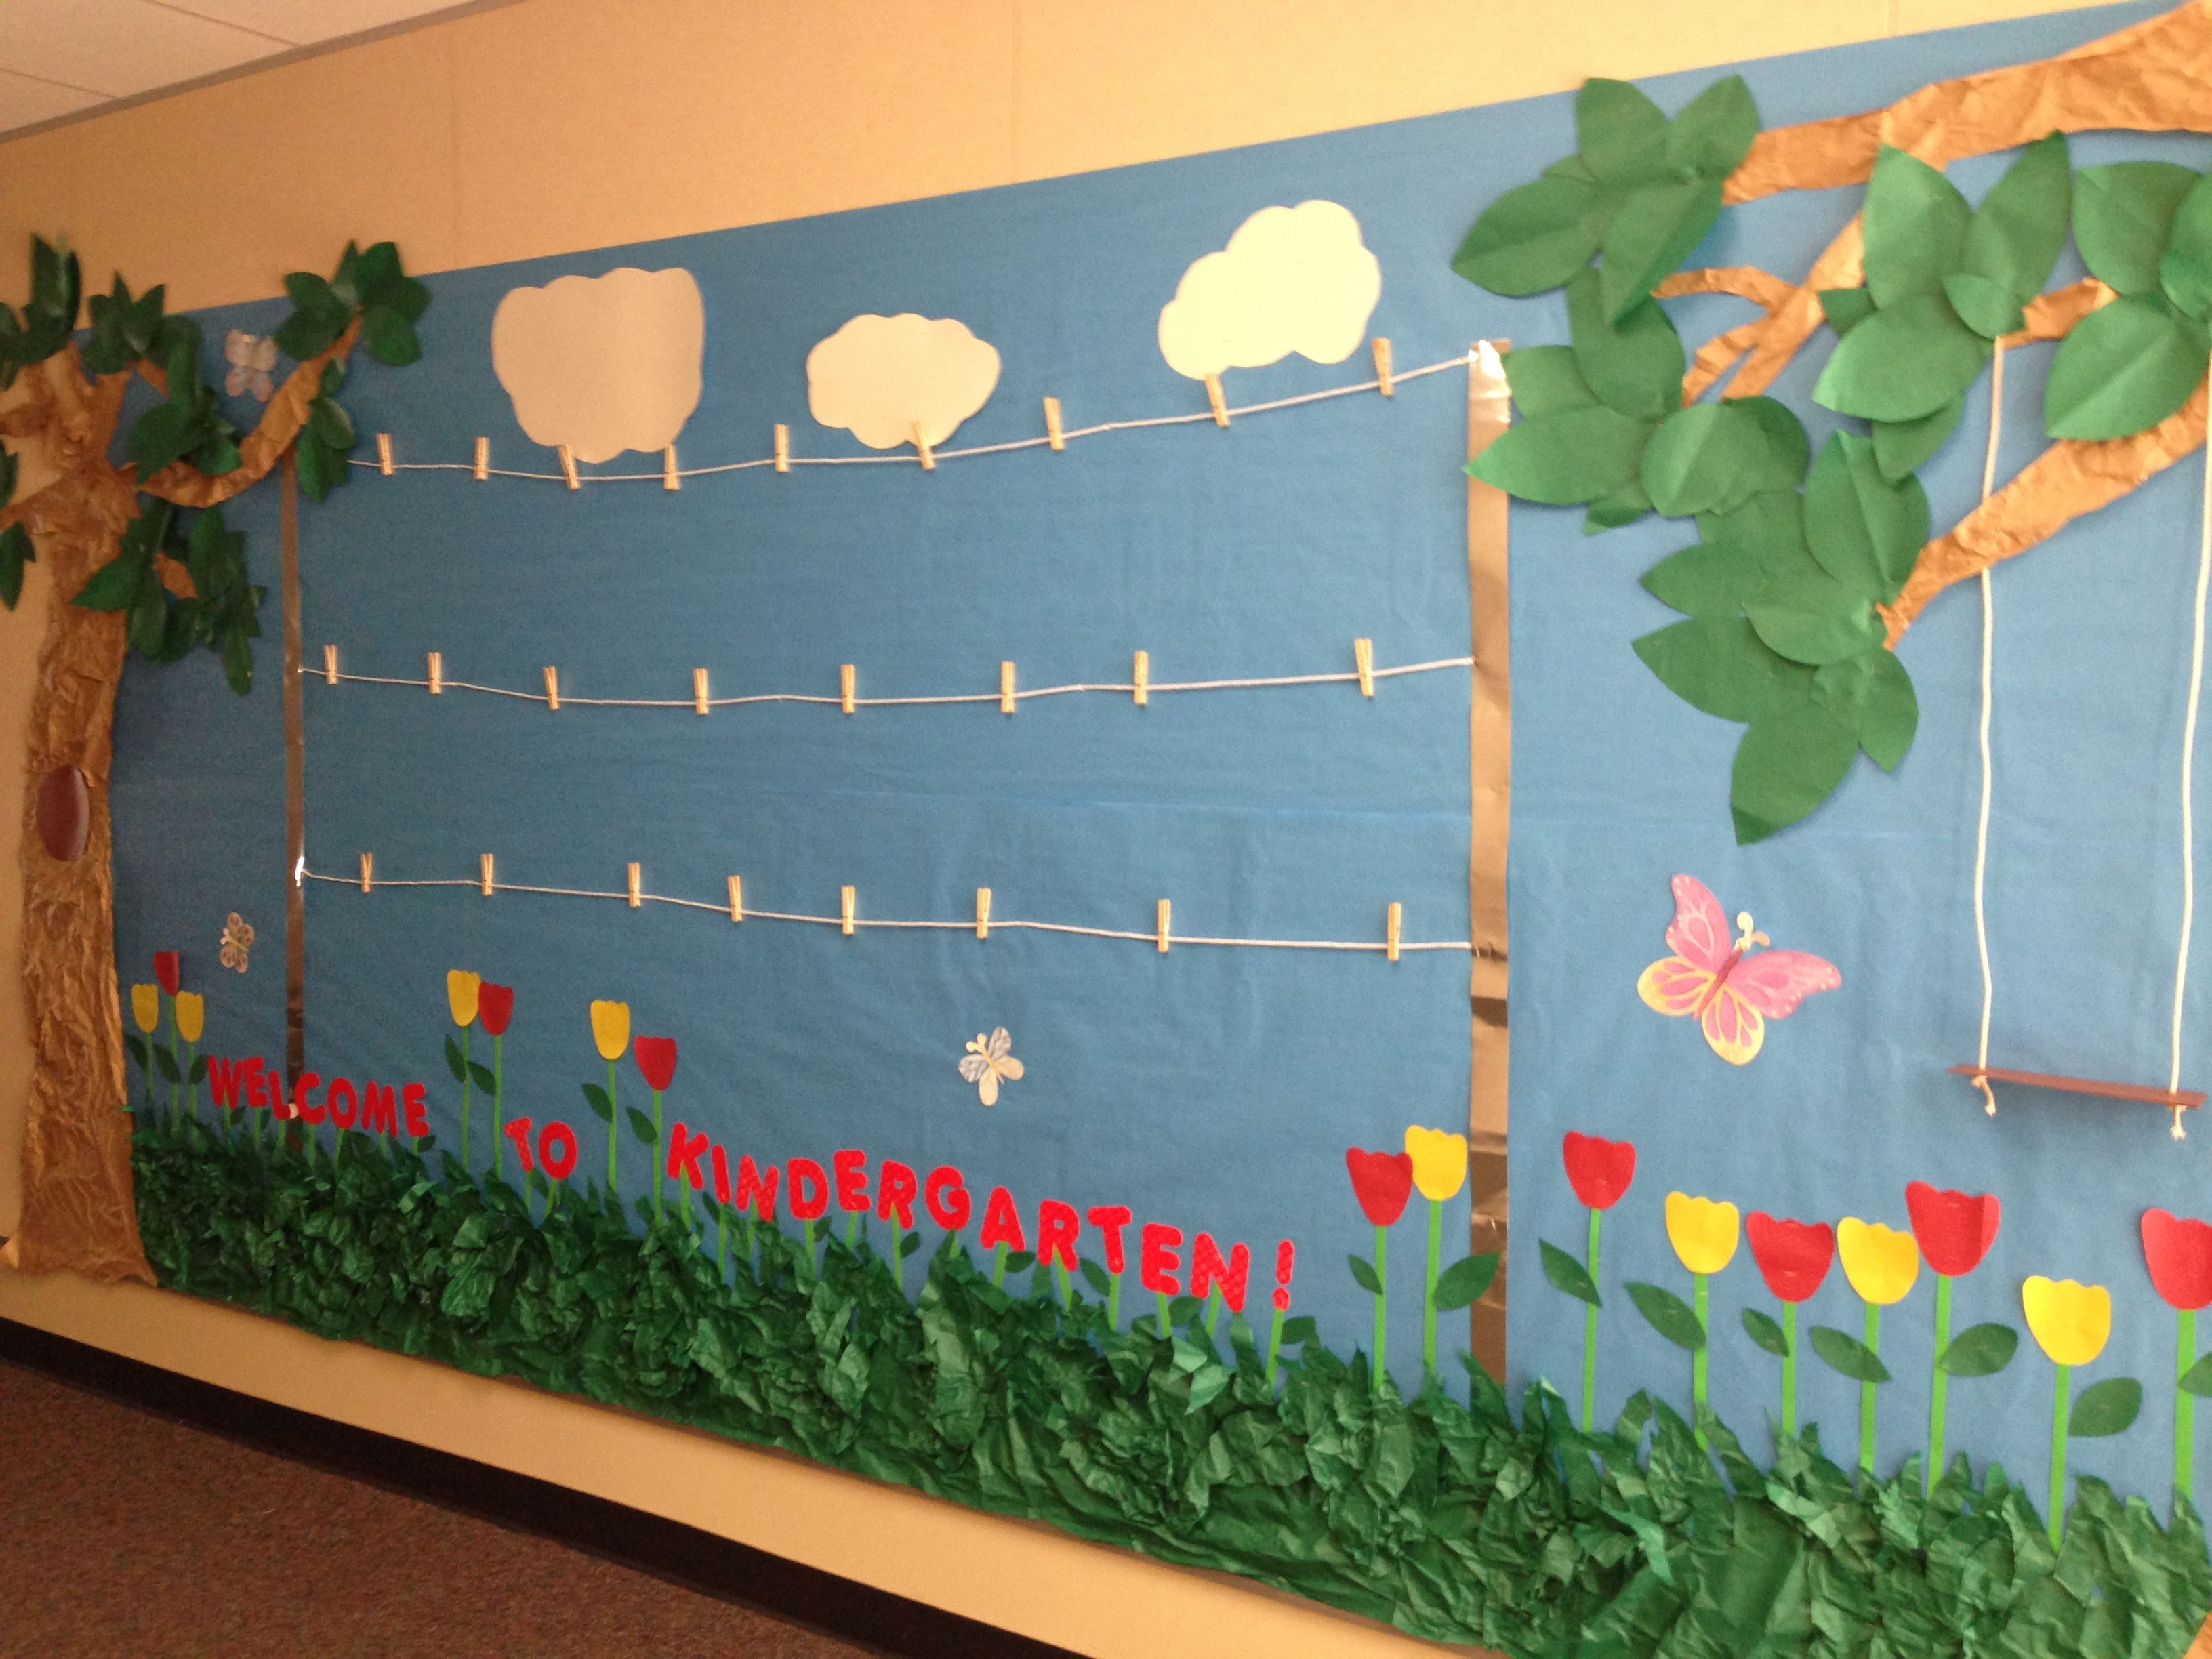 The Kids Clothesline Classy Garden Theme Bulletin Boardi Have The Clothesline To Display The Decorating Inspiration